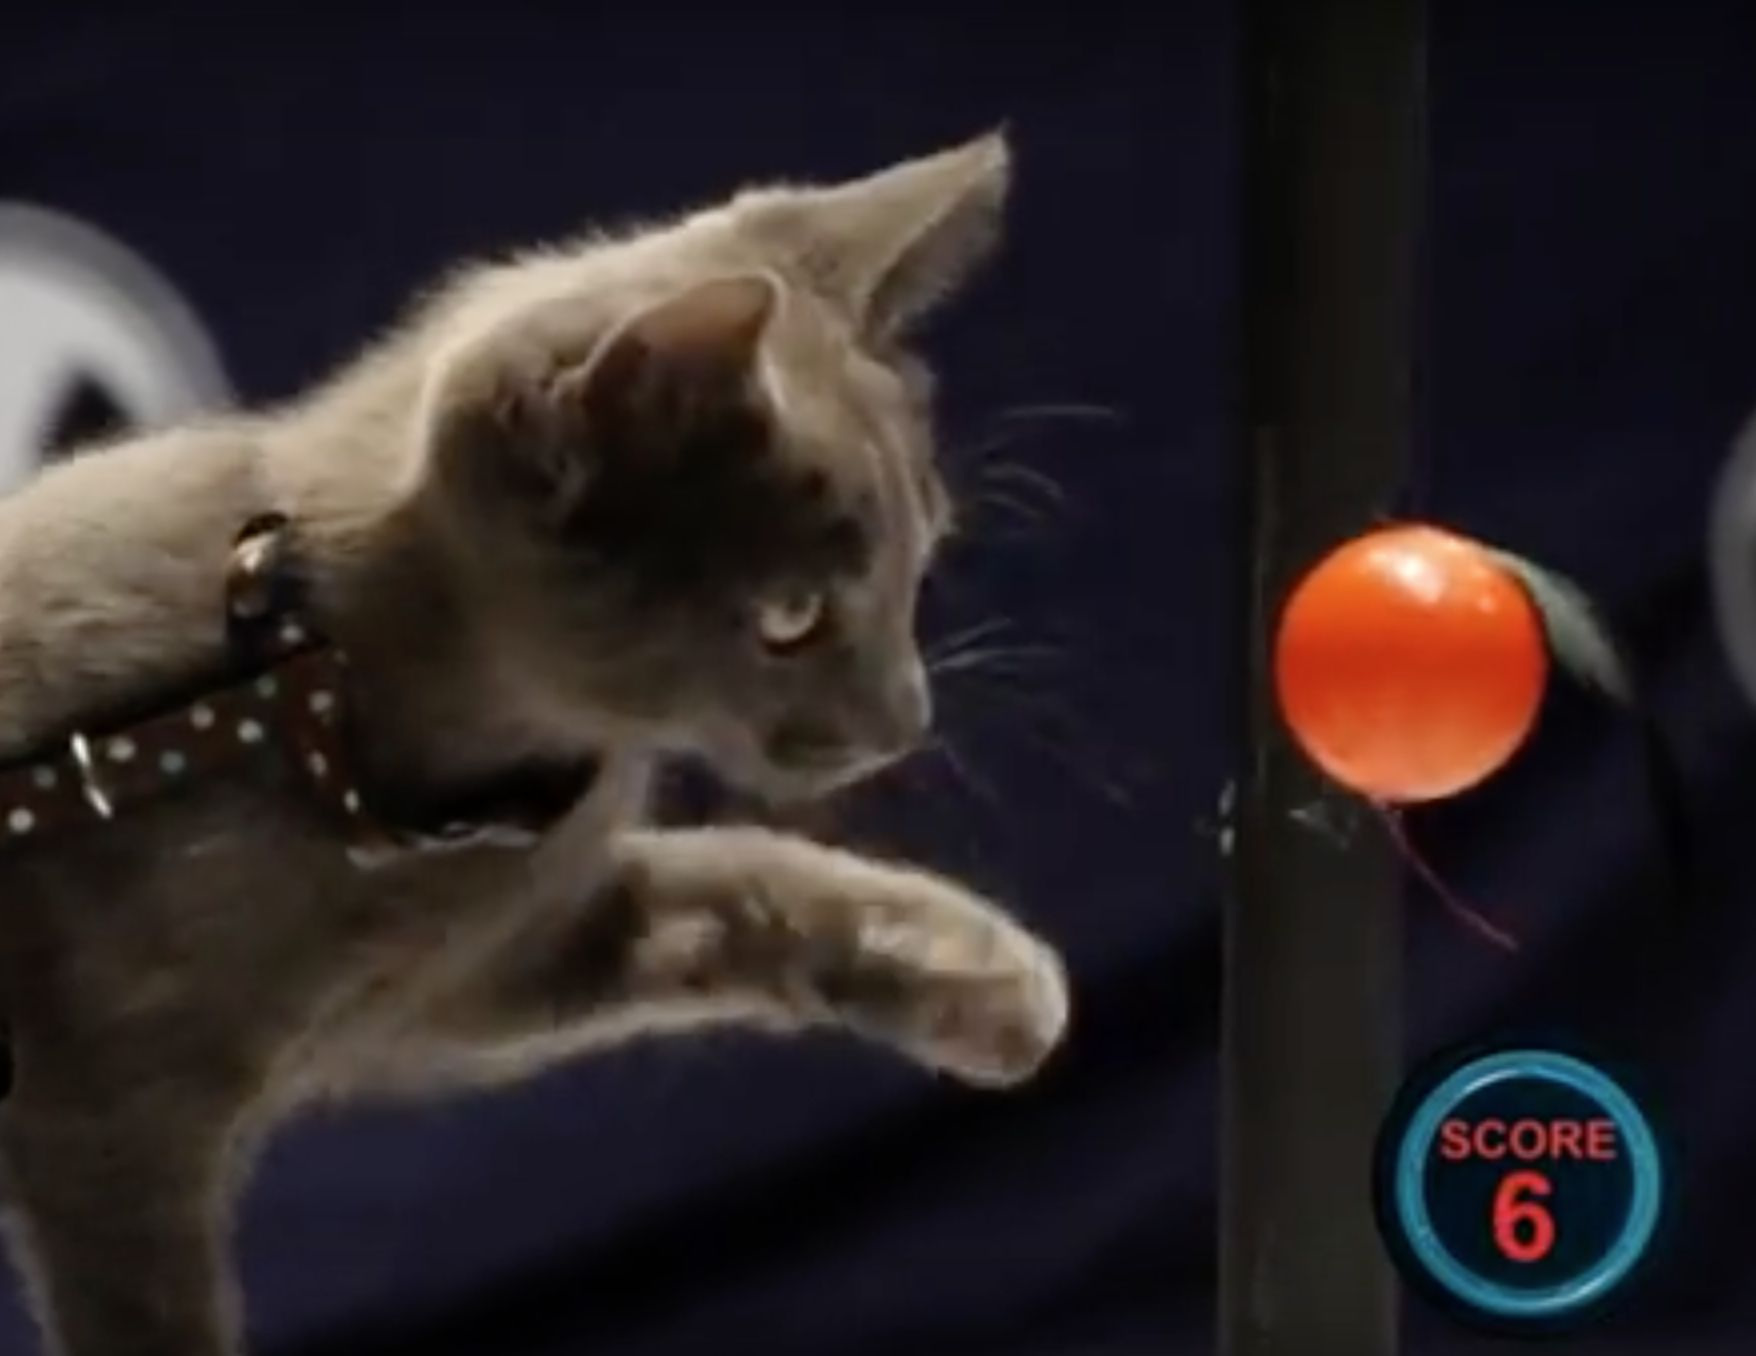 All4 S Battlecats Pits Kitties Against Each Other In An Amazing New Competition